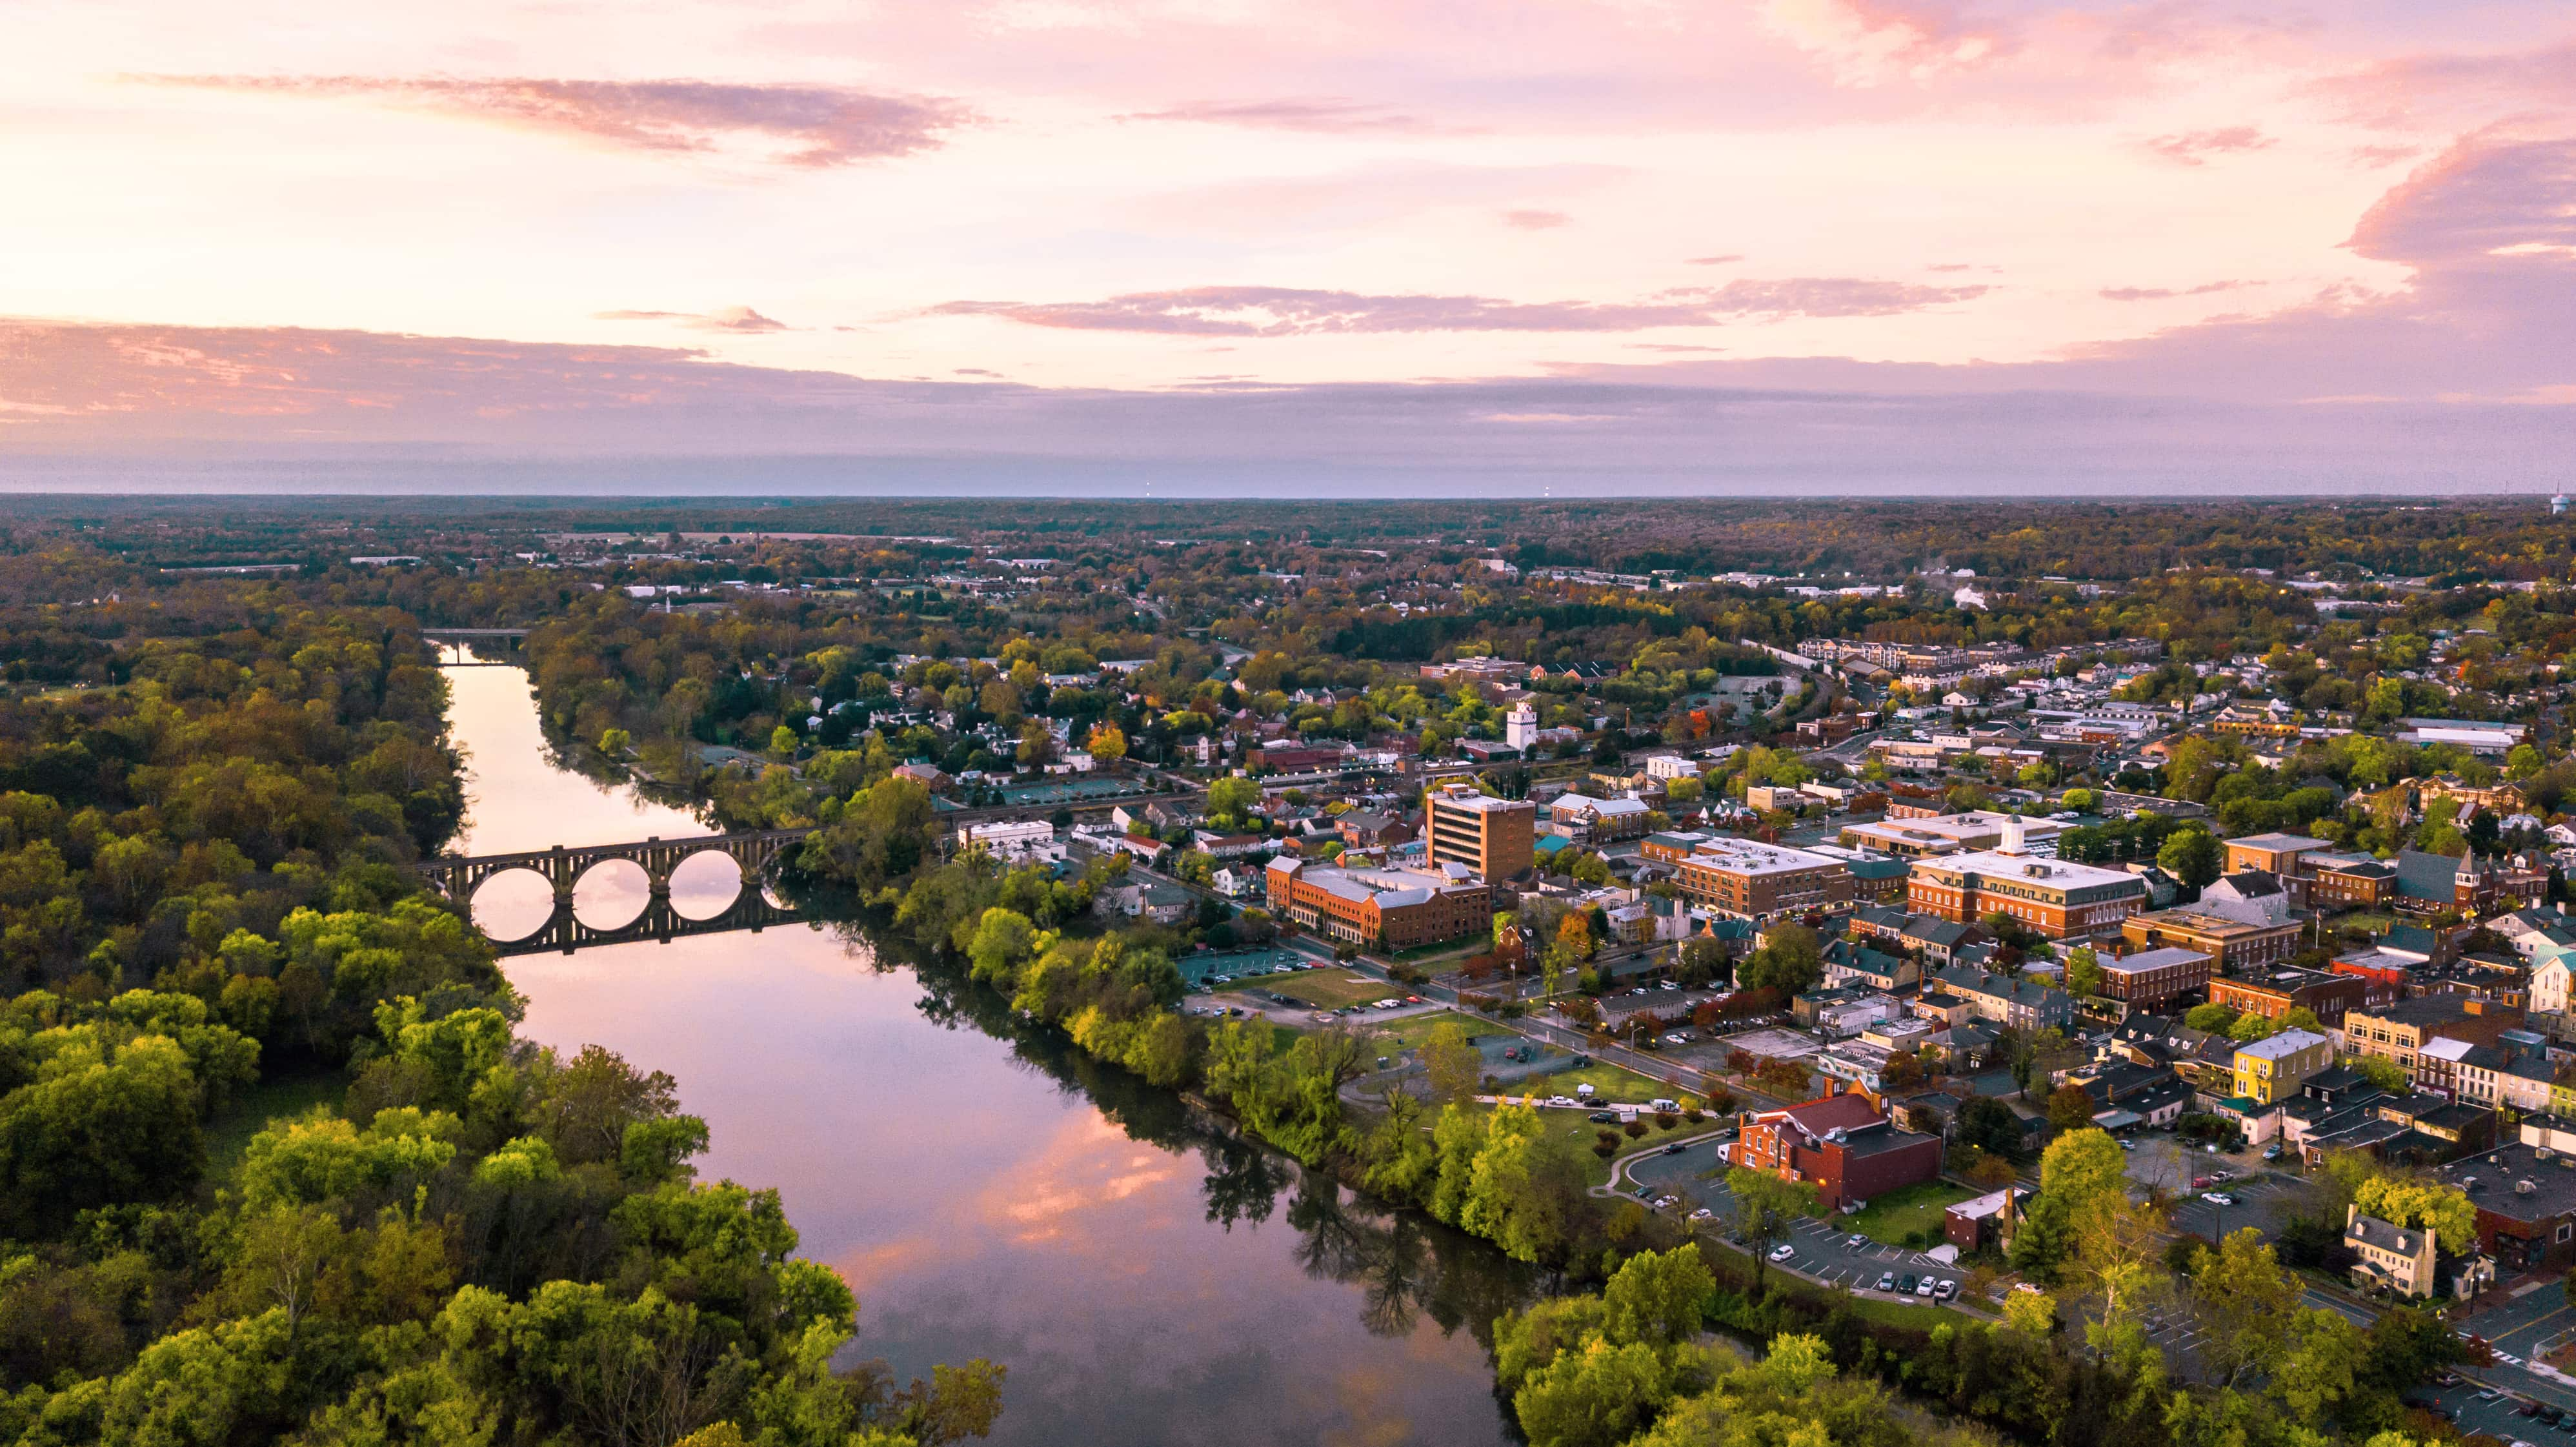 Looking to relocate a young family or couple in the D.C. Metro Area? Check out Fredericksburg, VA.